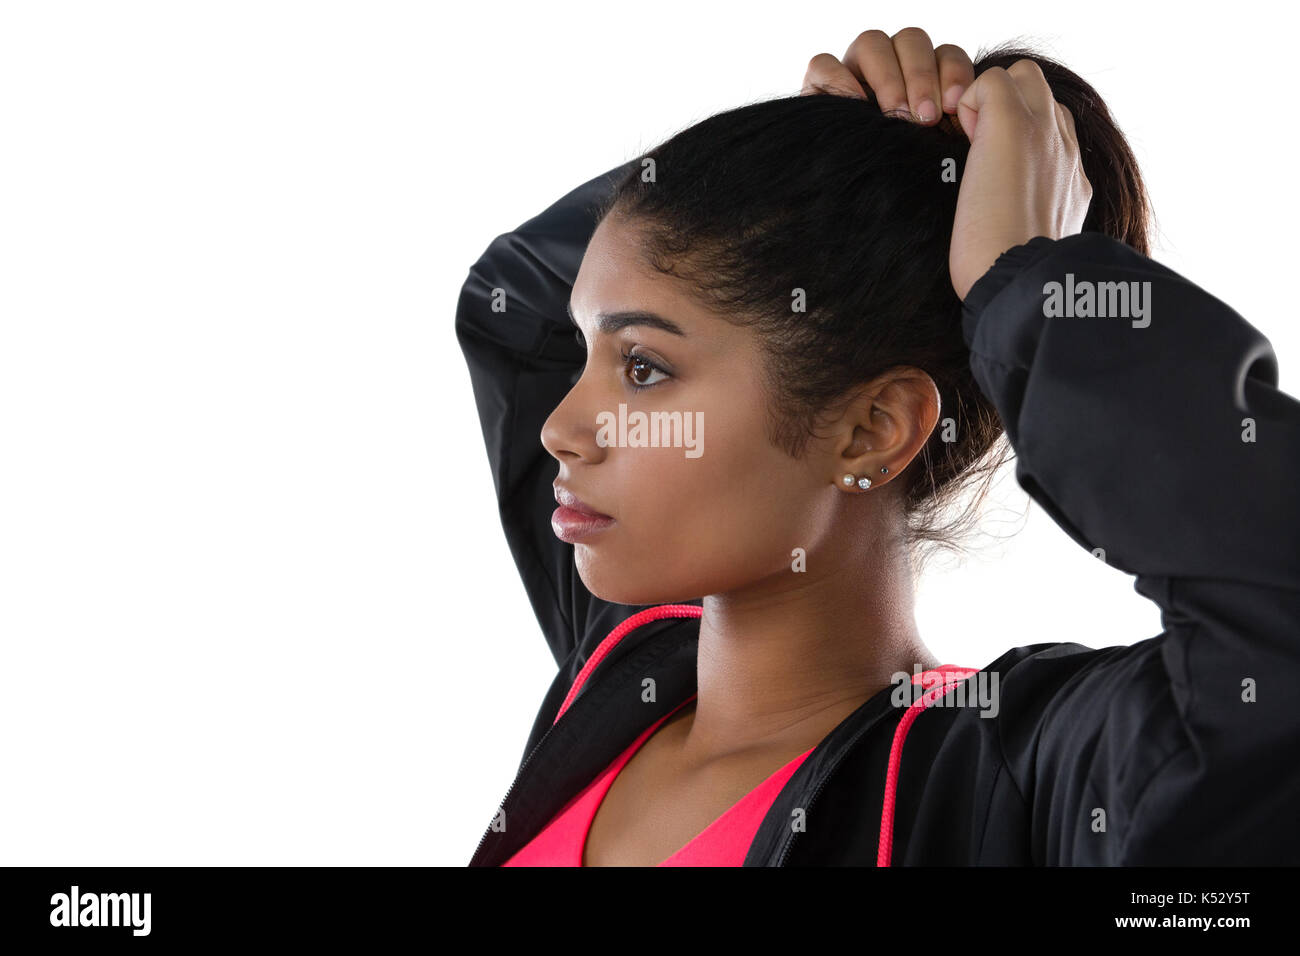 Young female athlete looking away while tying hair against white background - Stock Image